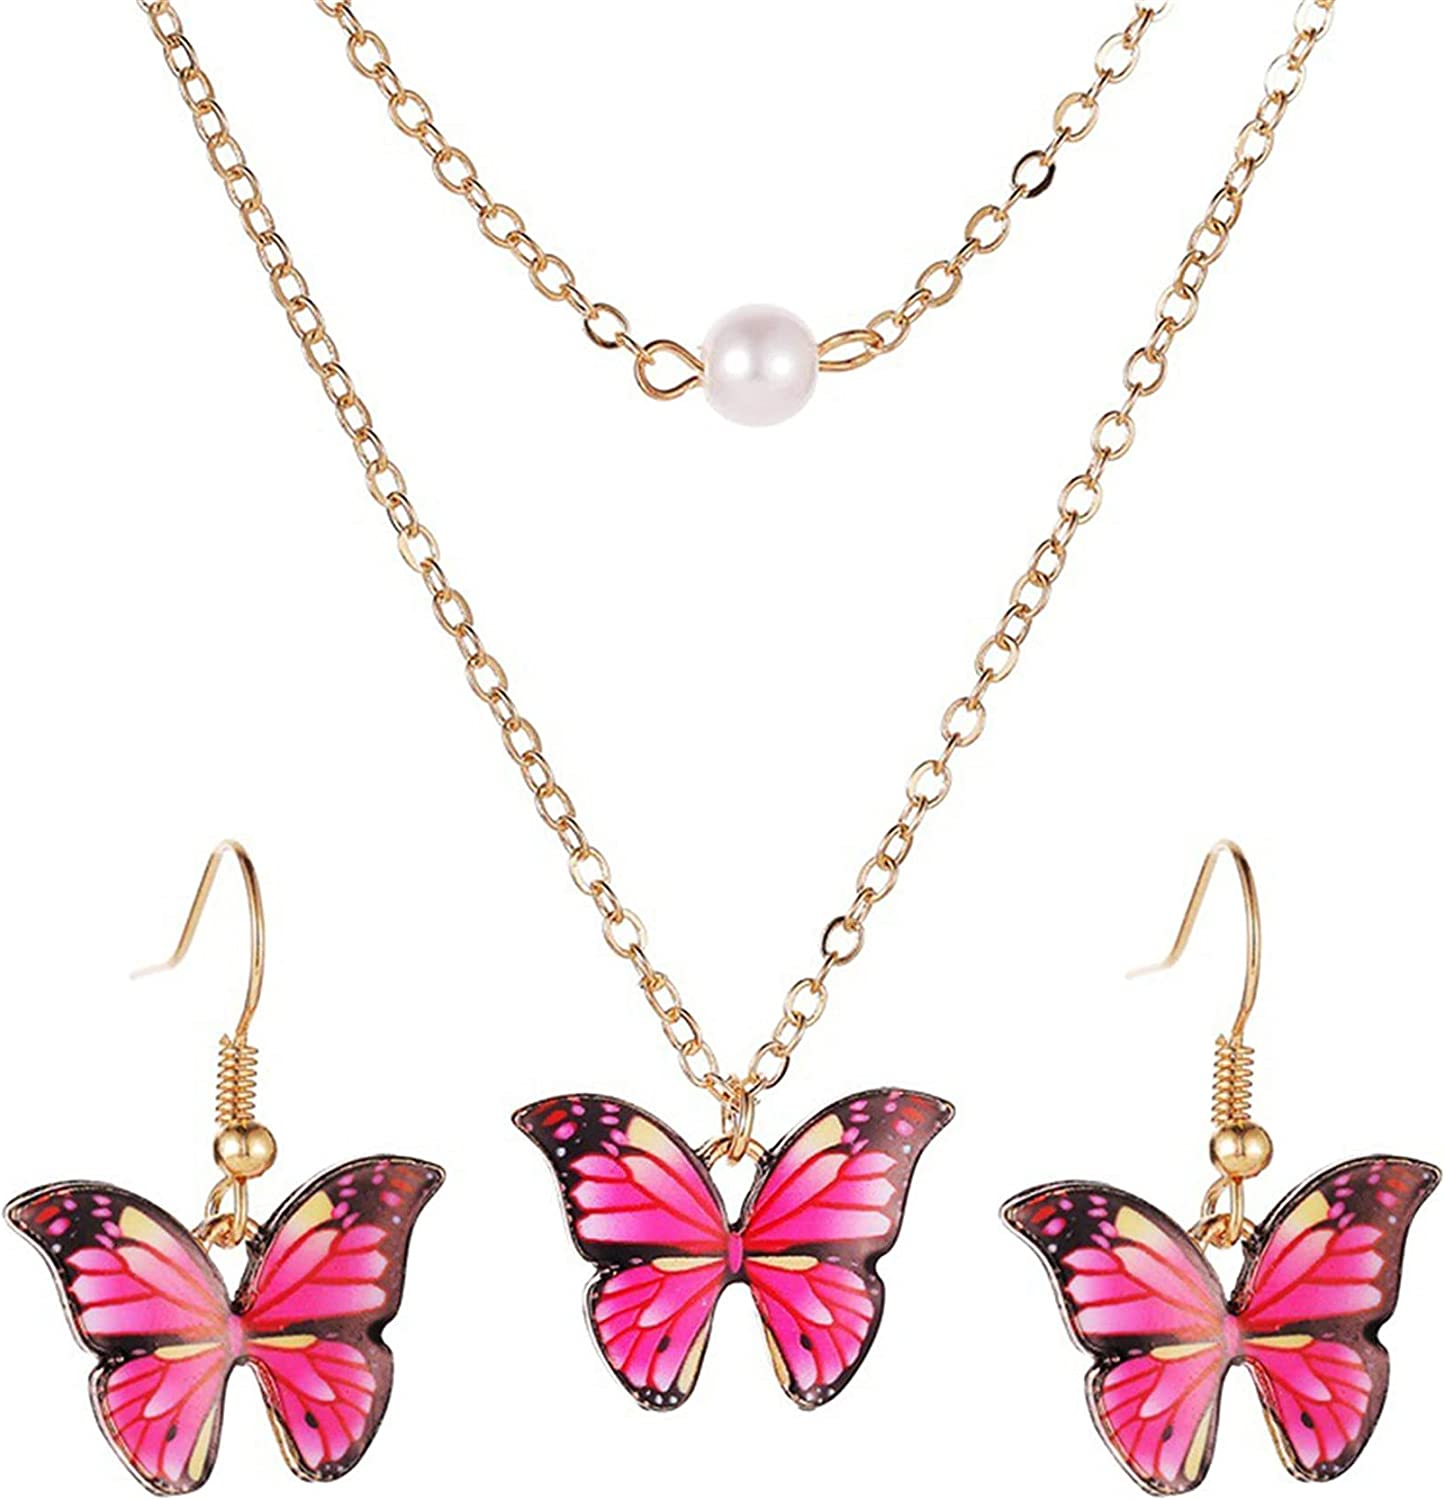 Year-end annual account ZHENGFEN Butterfly Necklace Earrings Set Layered Pend Today's only